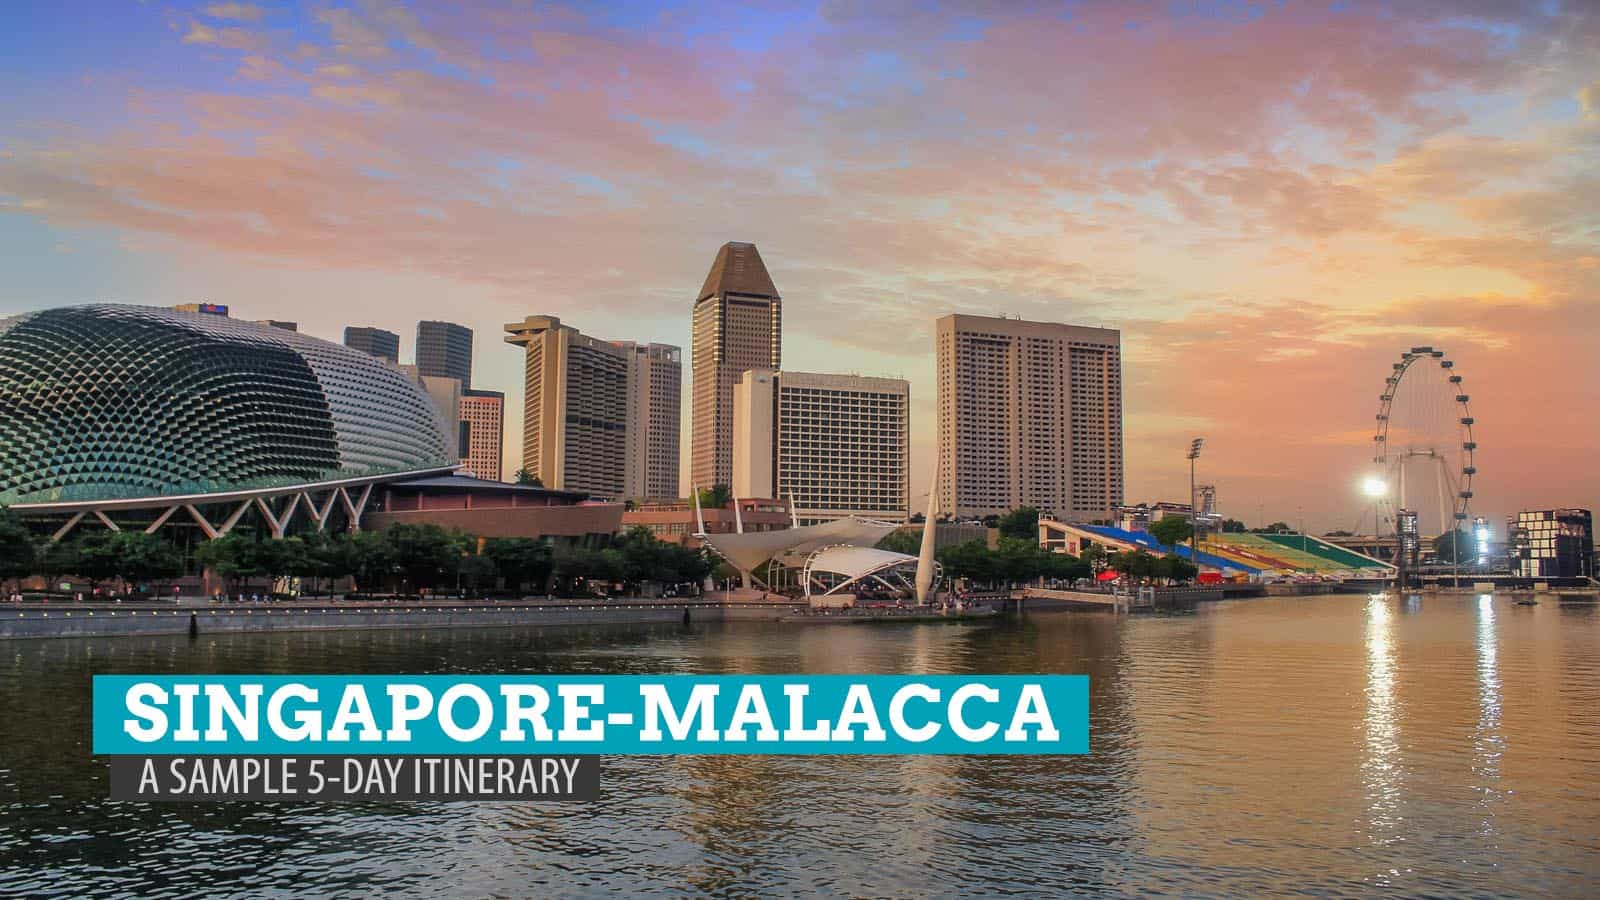 Singapore Malacca Trip A Sample 5 Day Itinerary How We Did It